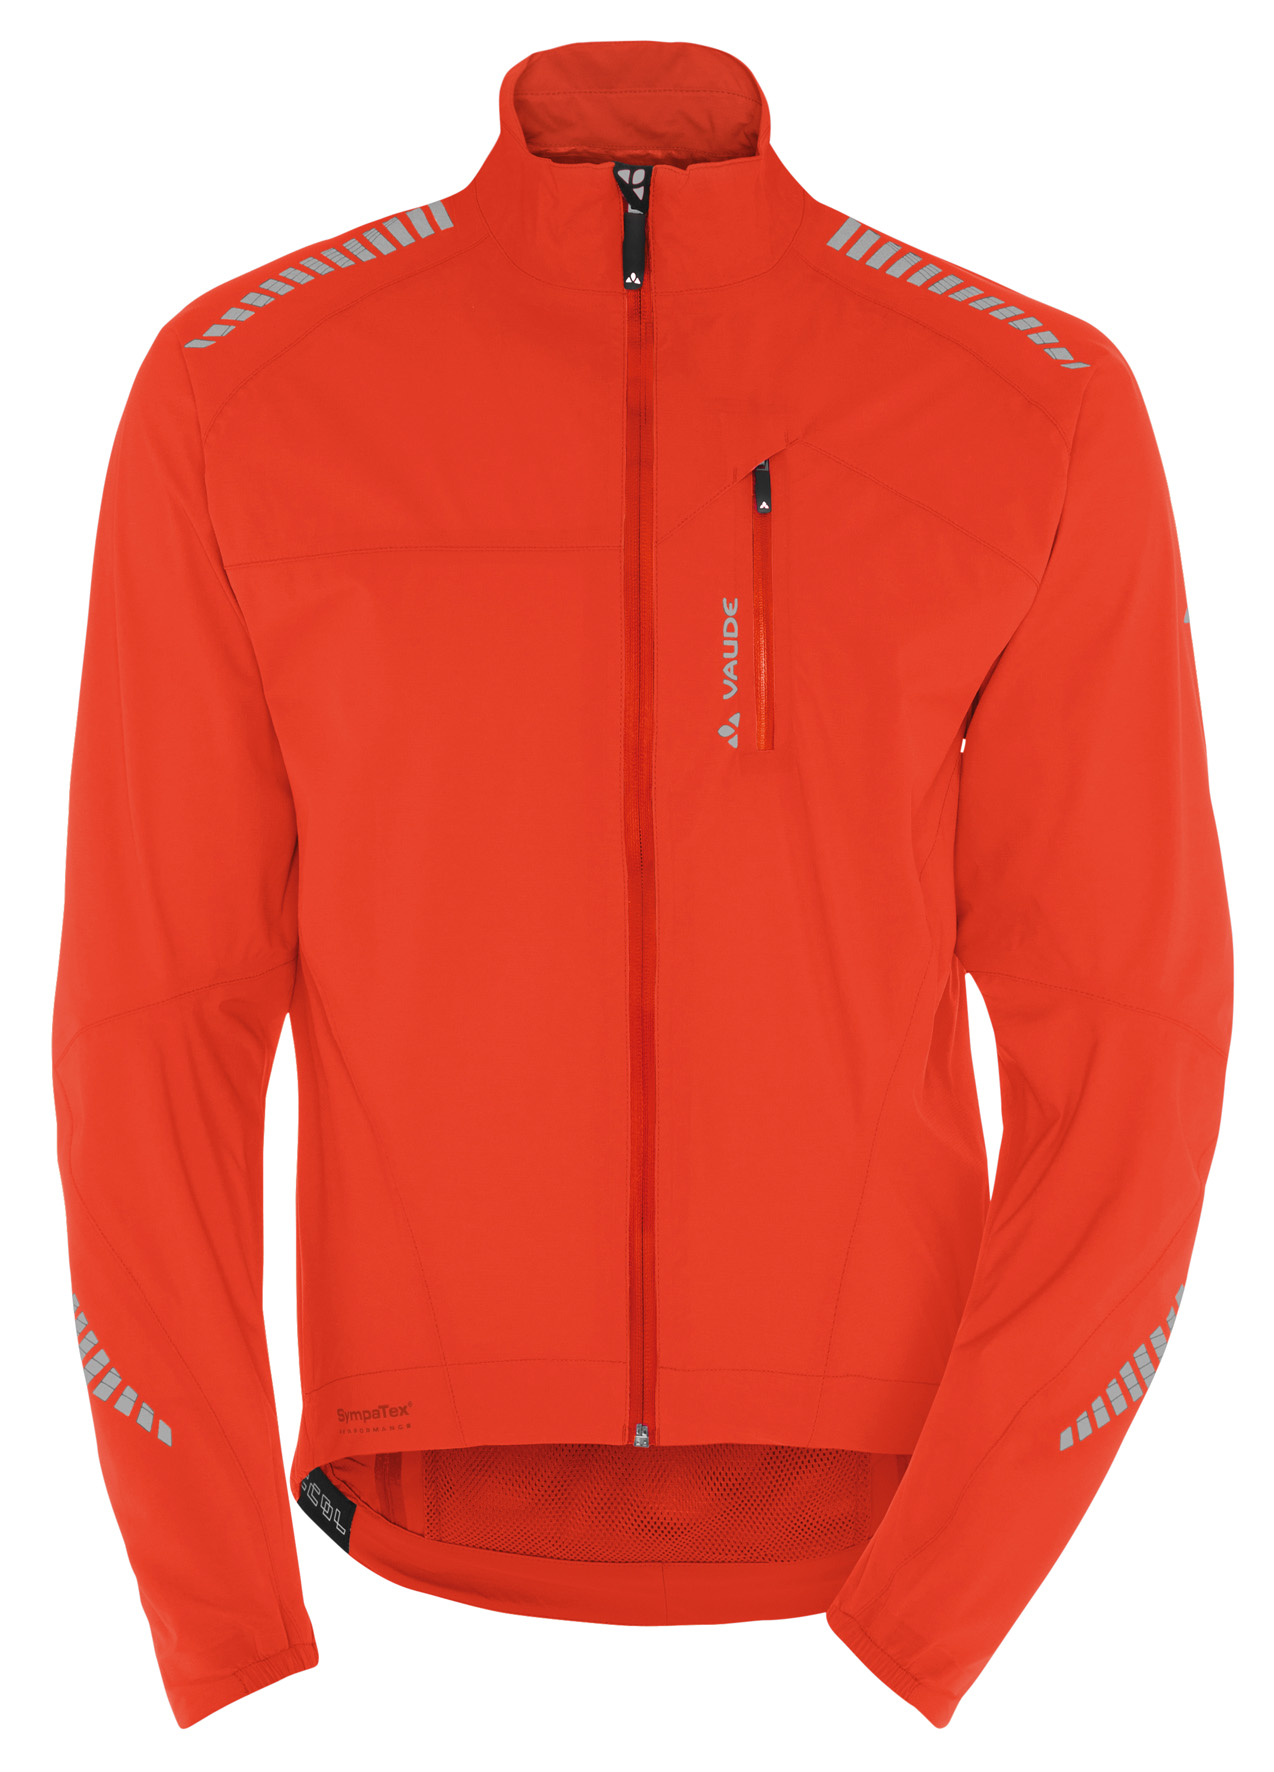 VAUDE Men´s Sympapro Jacket glowing red Größe M - schneider-sports